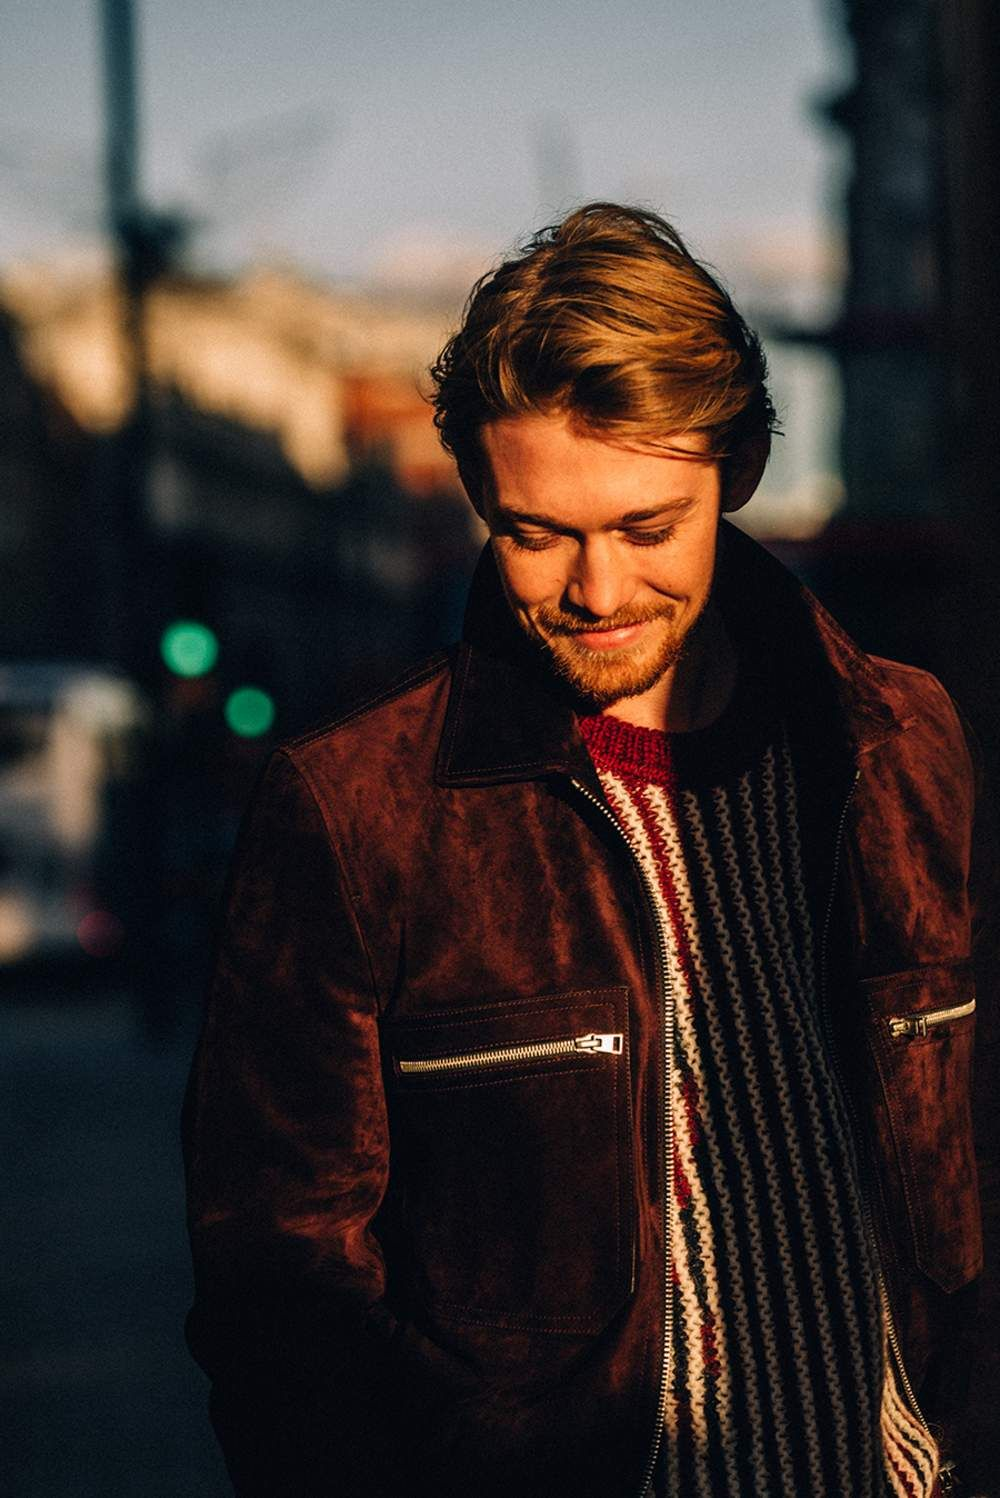 The Unstoppable Rise Of Mr Joe Alwyn The Look The Journal Issue 405 17 January 2019 Mr Porter Mr Porter Actors Joes